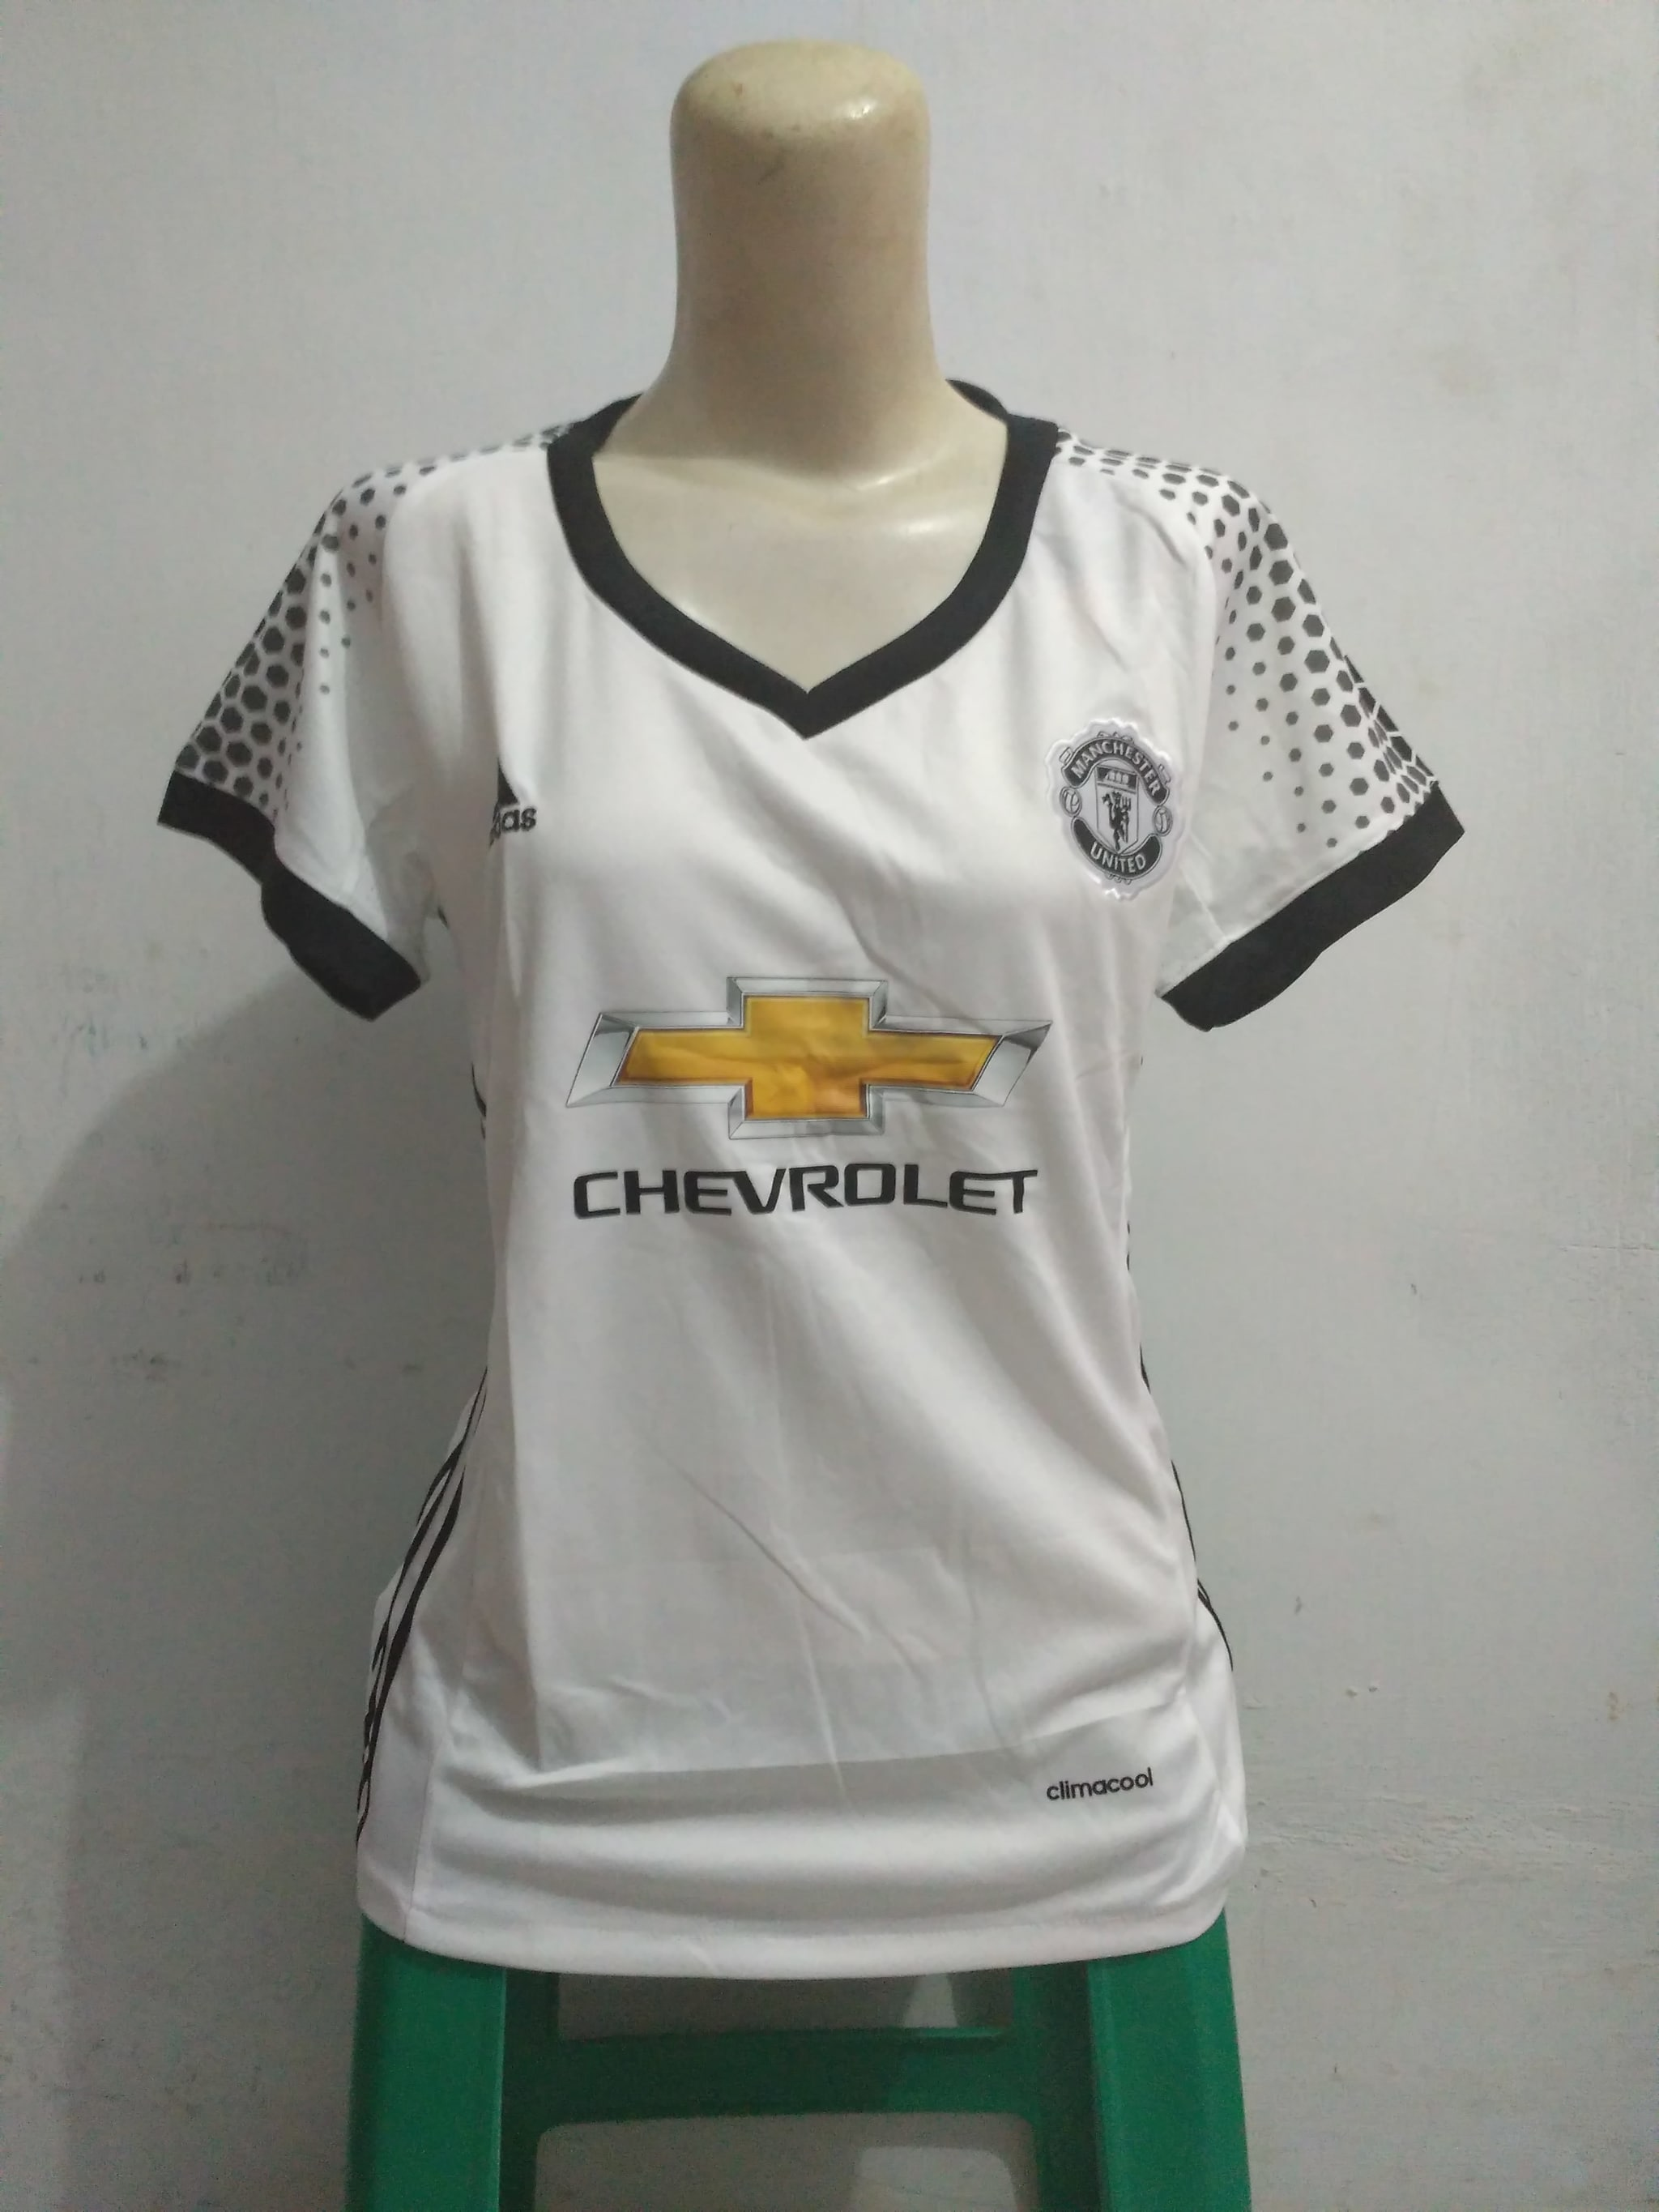 Jersey Baju Bola Grade Ori Manchester United Mu Away 2019 2017 Juventus Soccer Jerseys Best Prices At Trowbridgeops Jual Kaos Wanita 3rd Ladies 2016